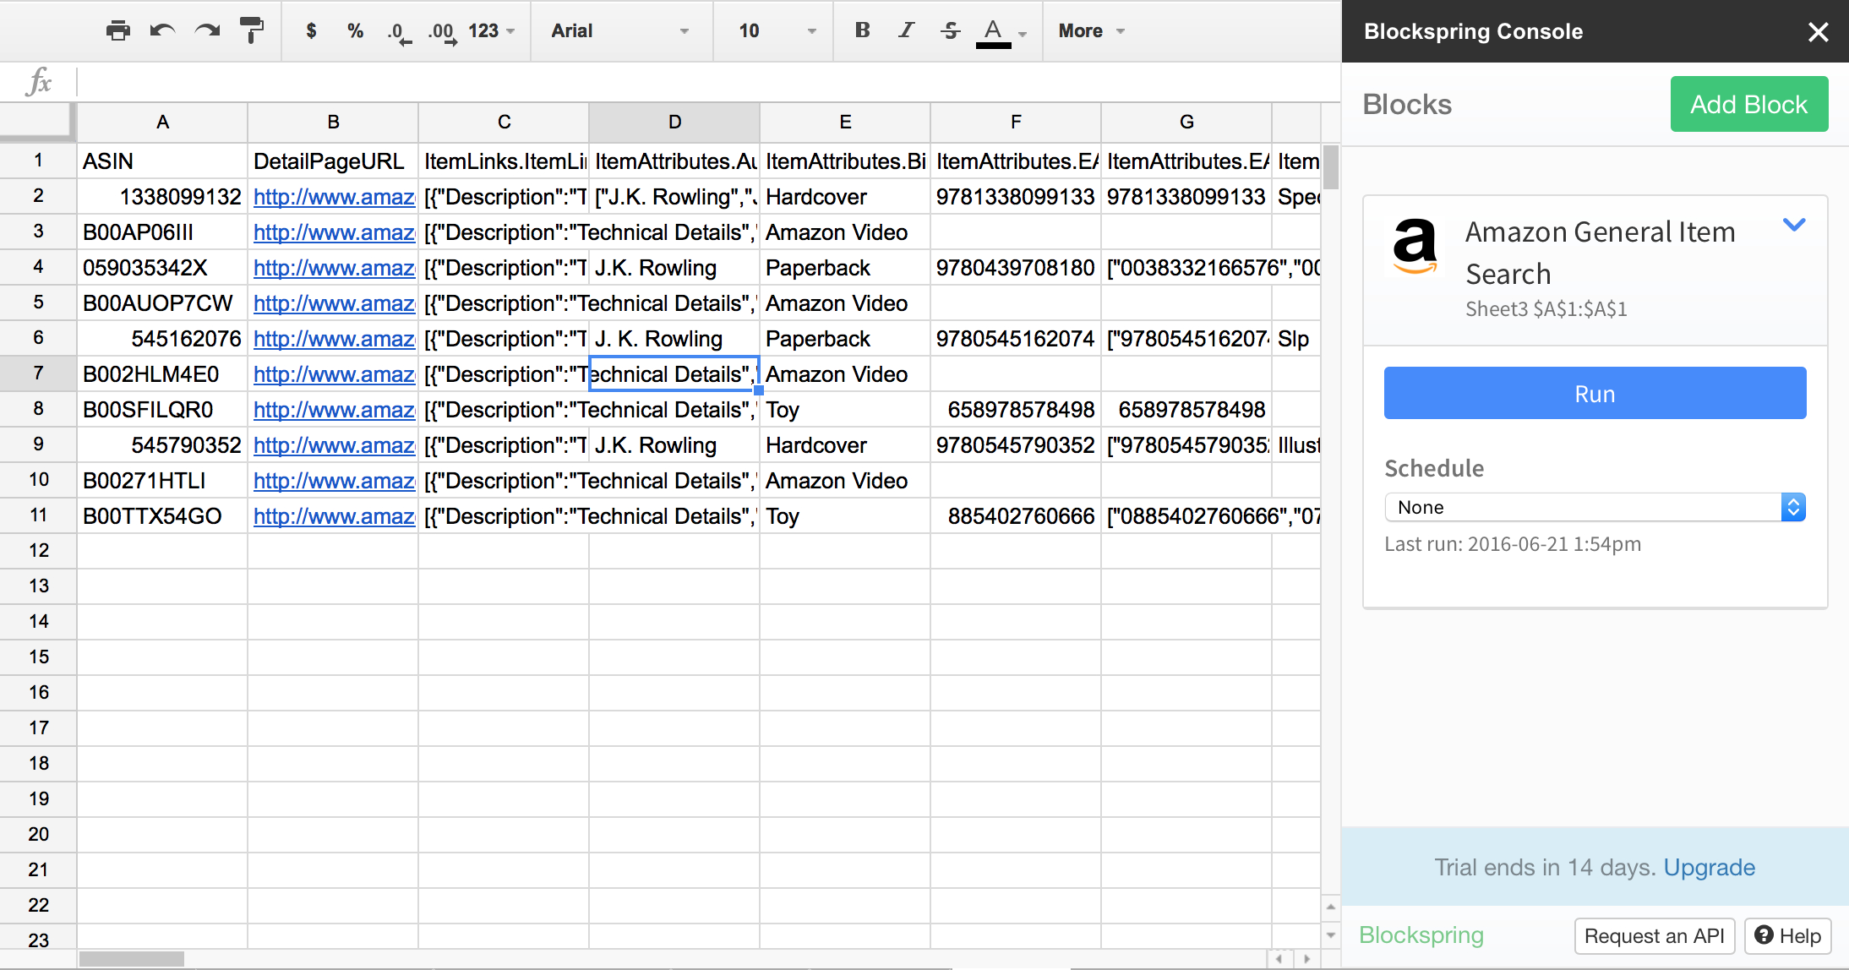 book list spreadsheet template reading list spreadsheet rory gilmore reading list spreadsheet book list spreadsheet book reading list spreadsheet  Reading List Spreadsheet Throughout 50 Google Sheets Addons To Supercharge Your Spreadsheets  The Reading List Spreadsheet Printable Spreadshee